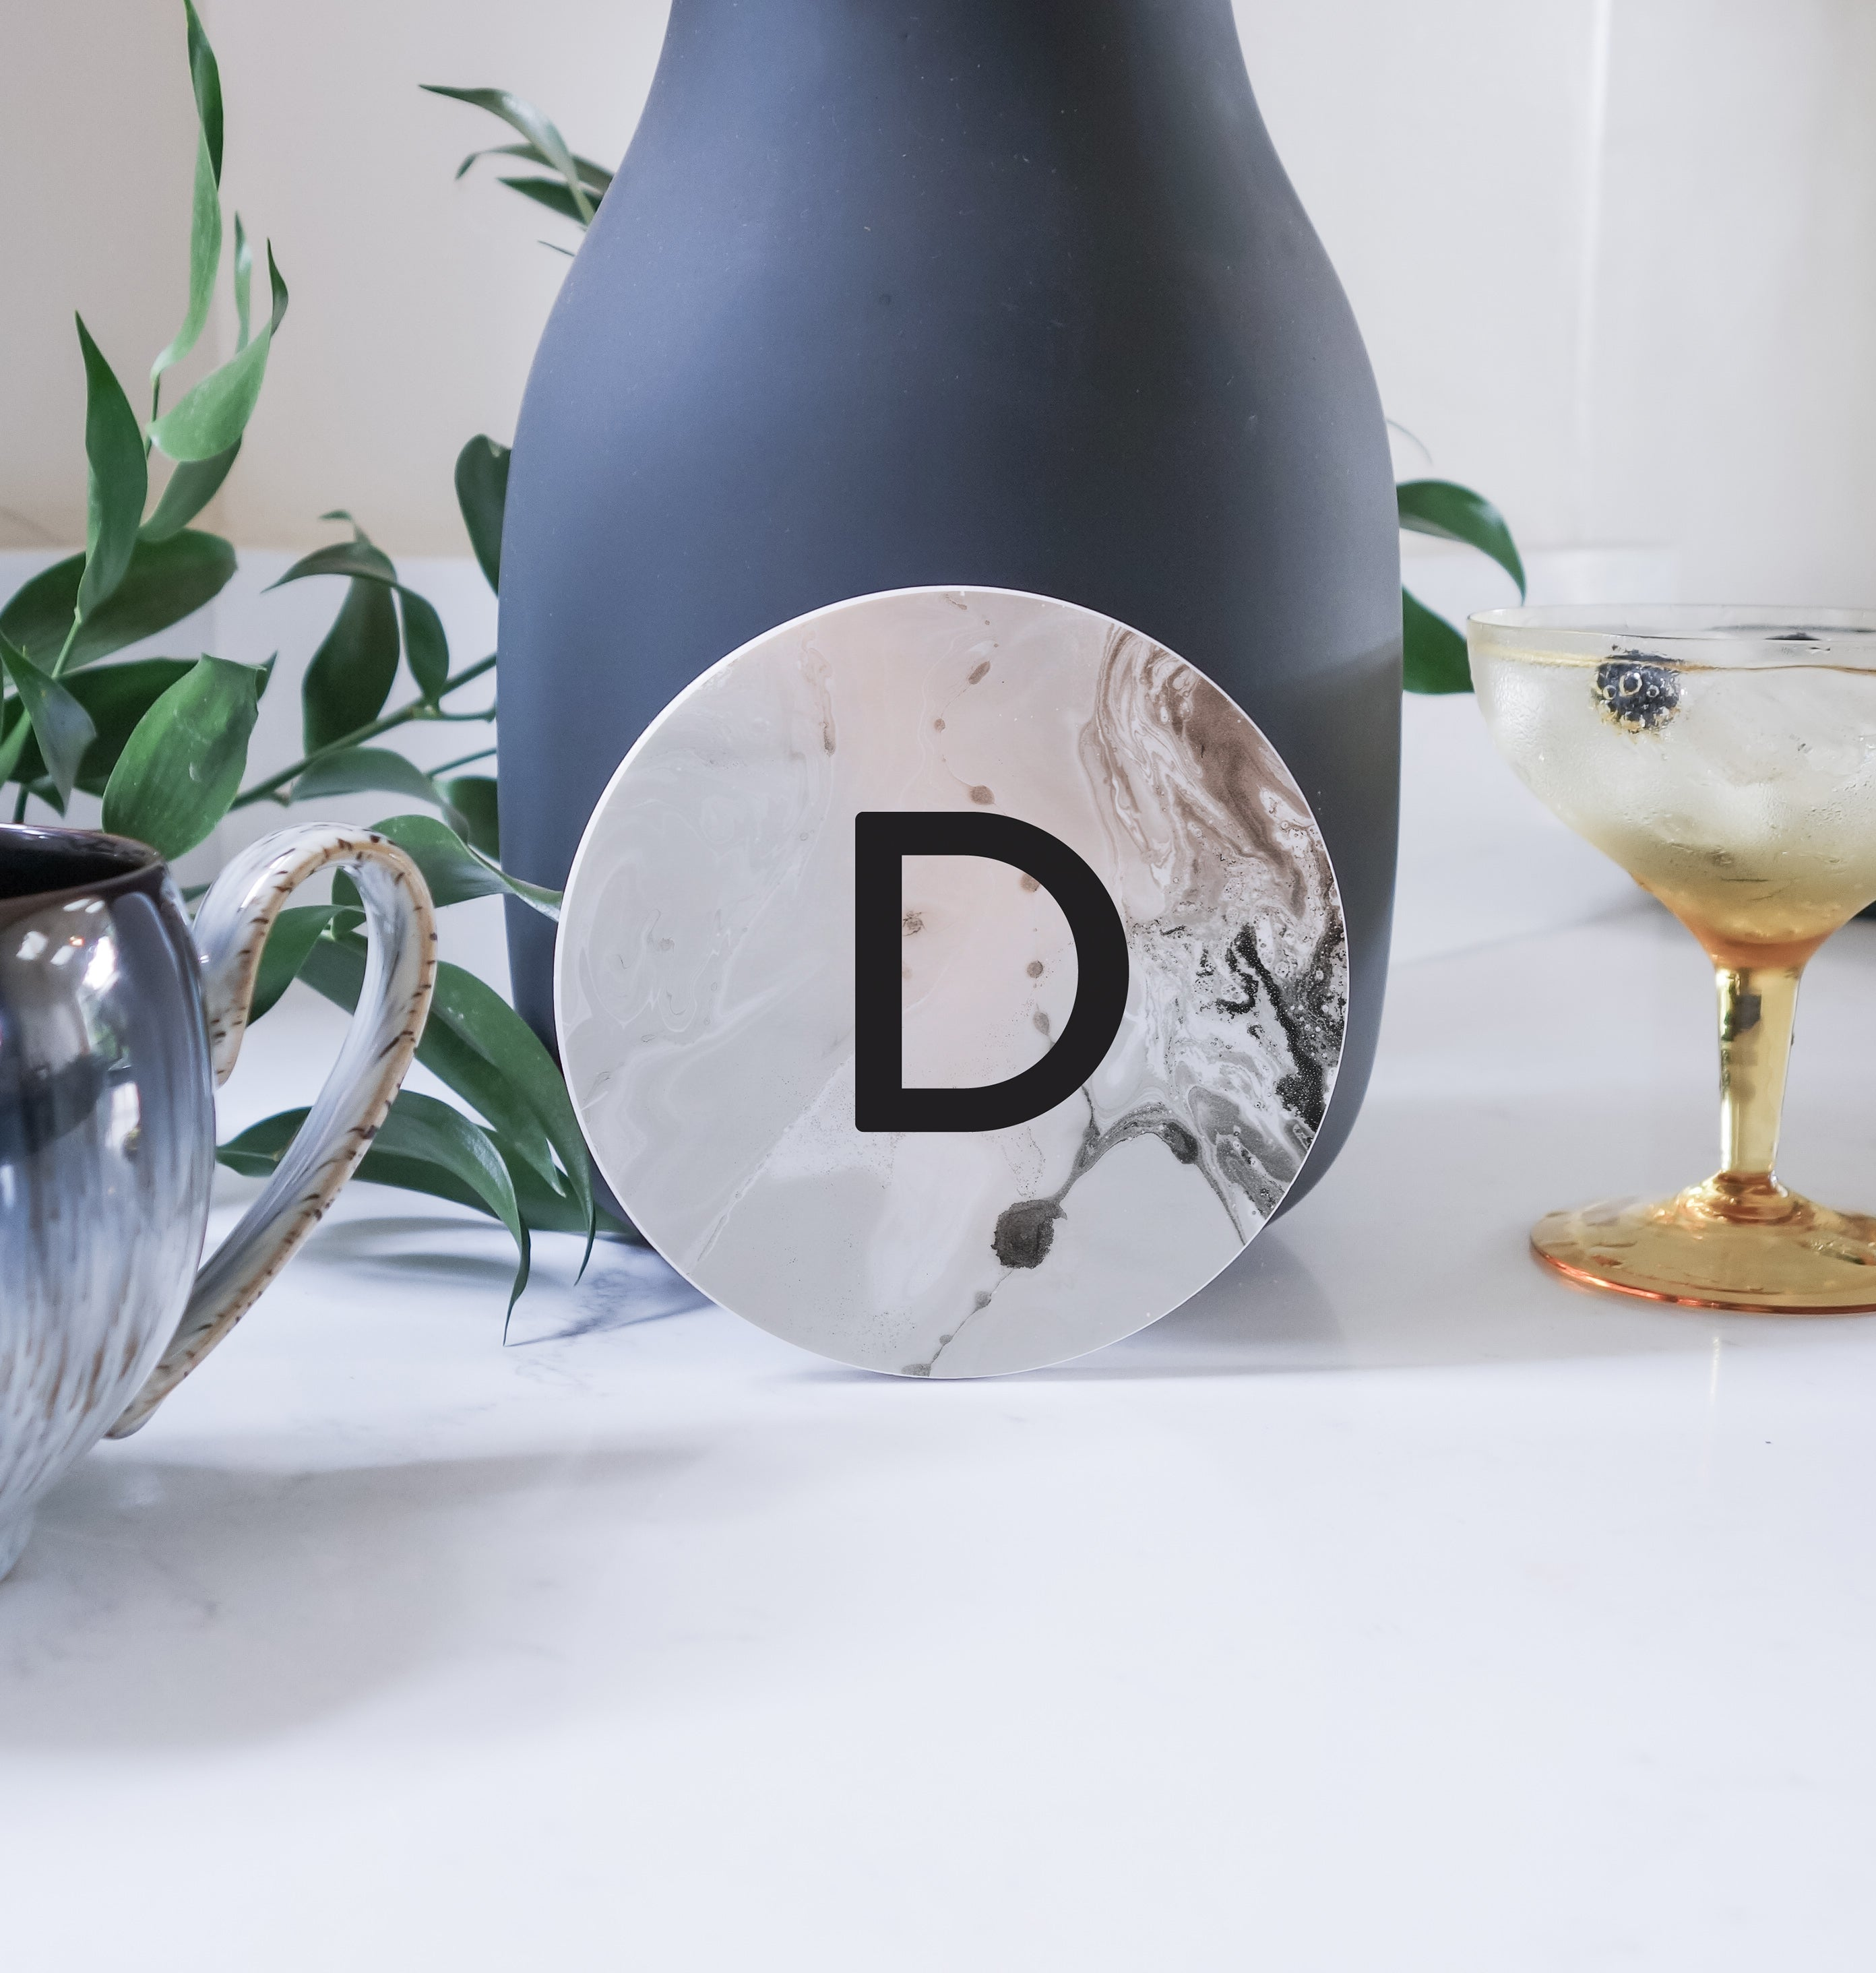 Ceramic Modern Personalised Round Coaster - Brown/Grey Marble